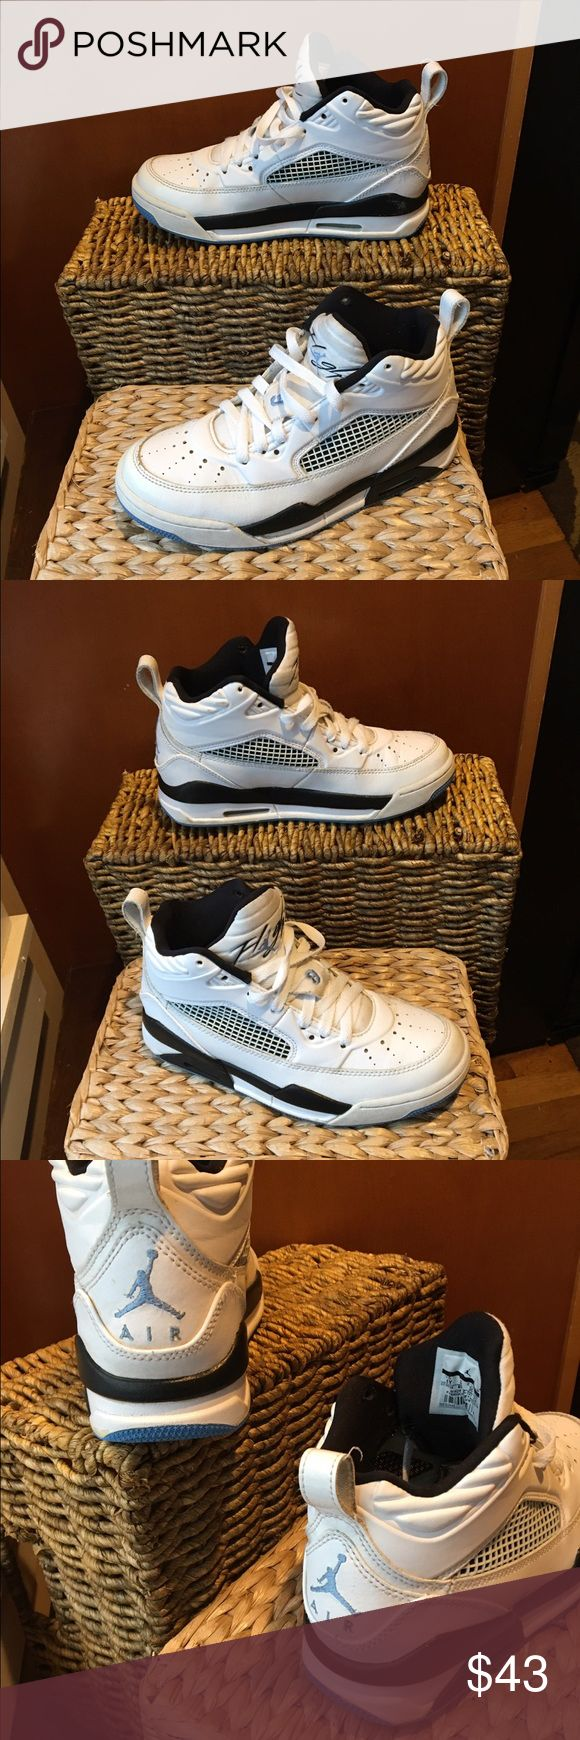 Nike Air Jordan flight shoe size 4Y Nike Air Jordan Flight 9.5 (GS) White/Legend Blue-Black #654975-127. kids size 4Y, could also be a woman's size 5.5. These sneakers are in excellent used condition, hardly creasing, some wear in the bottom but still very clean. Originally 90.00. No box included. Nike Shoes Slippers